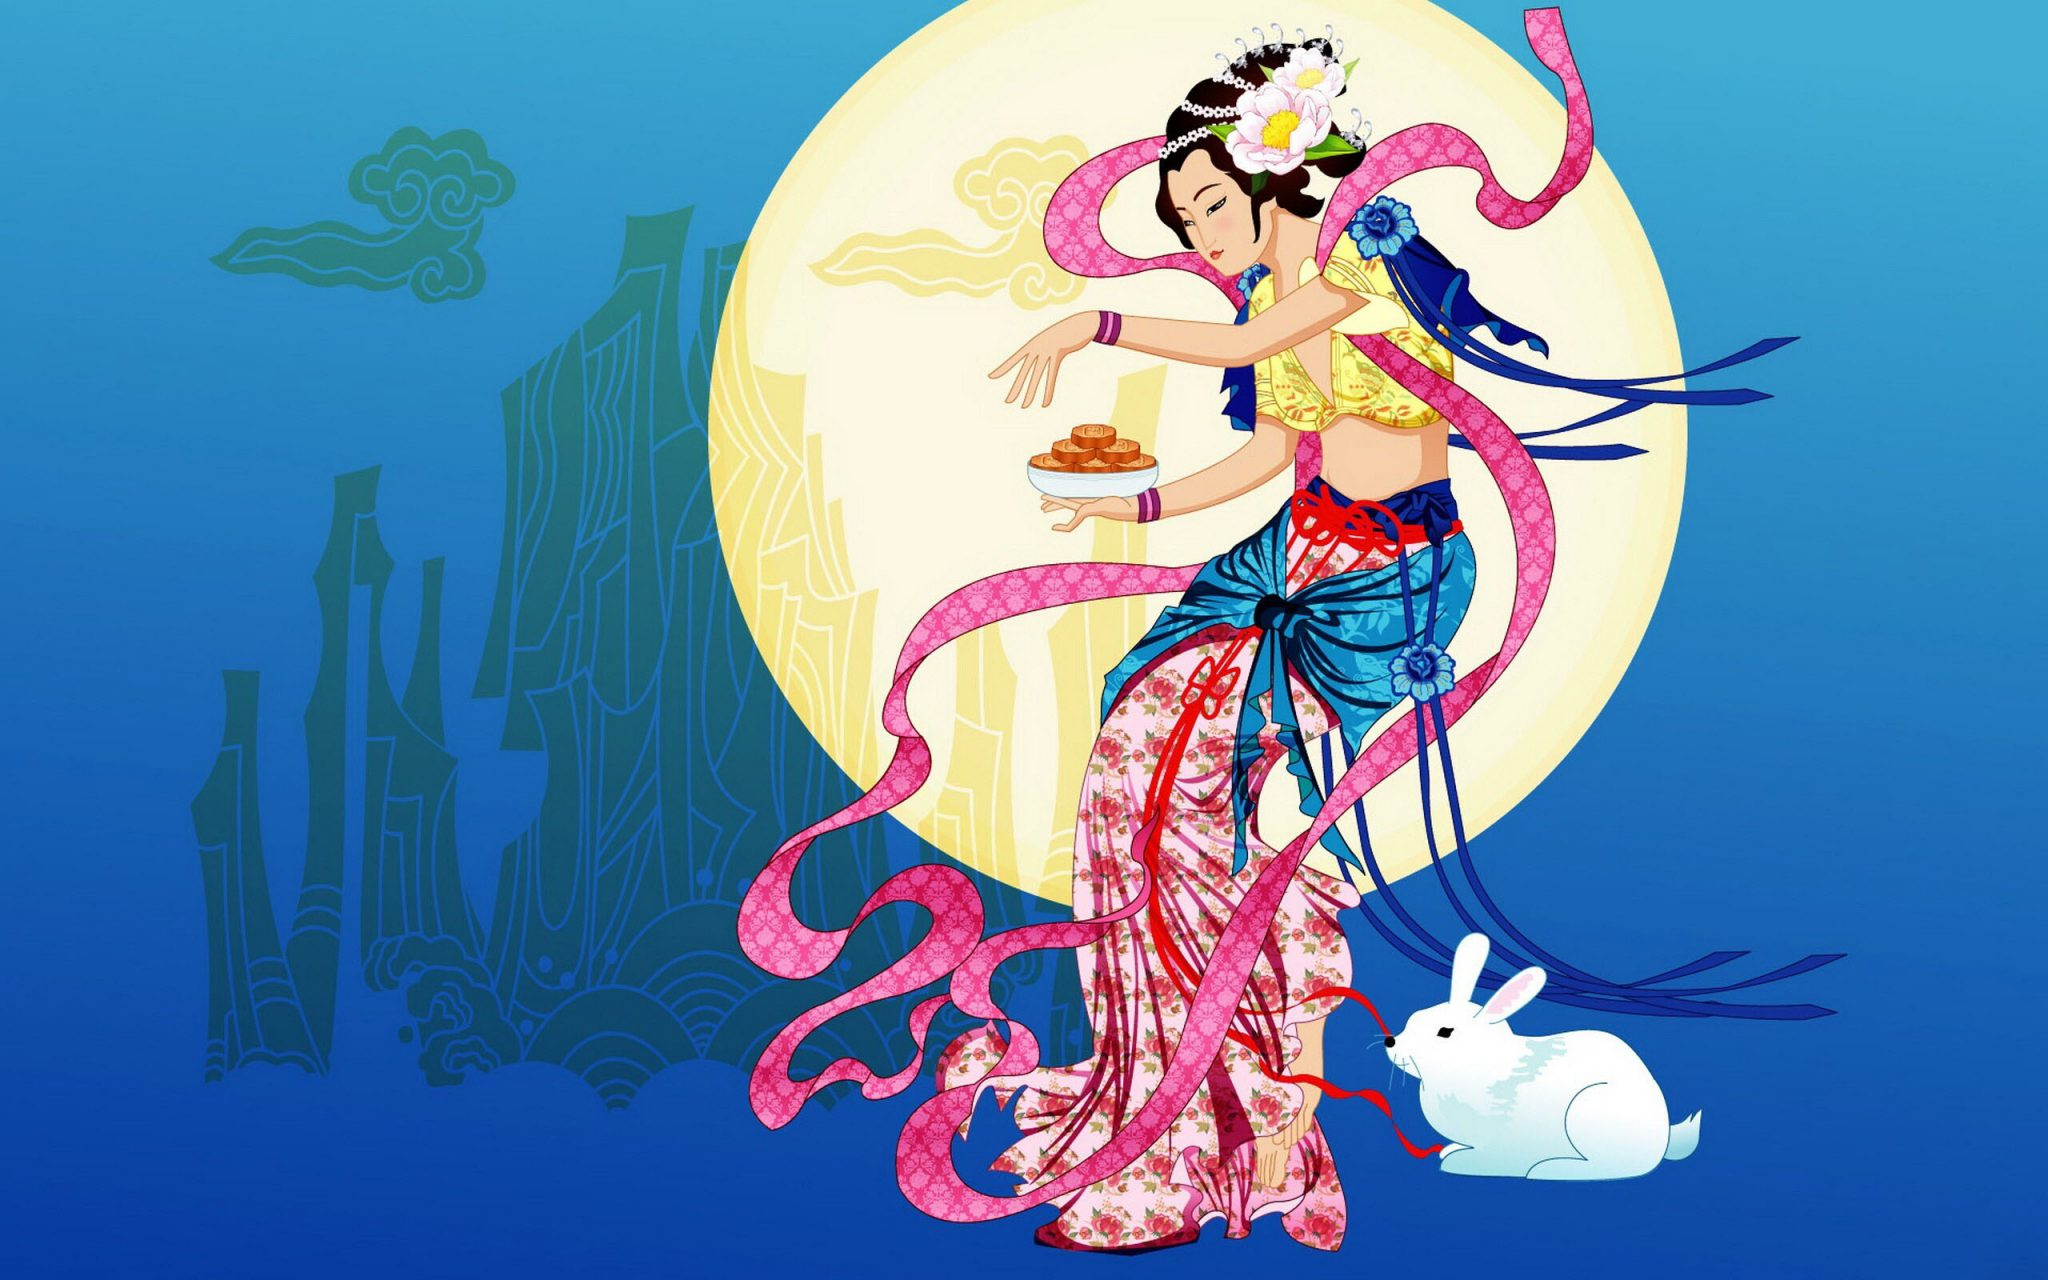 Chang-e from the chinese moon festival legend